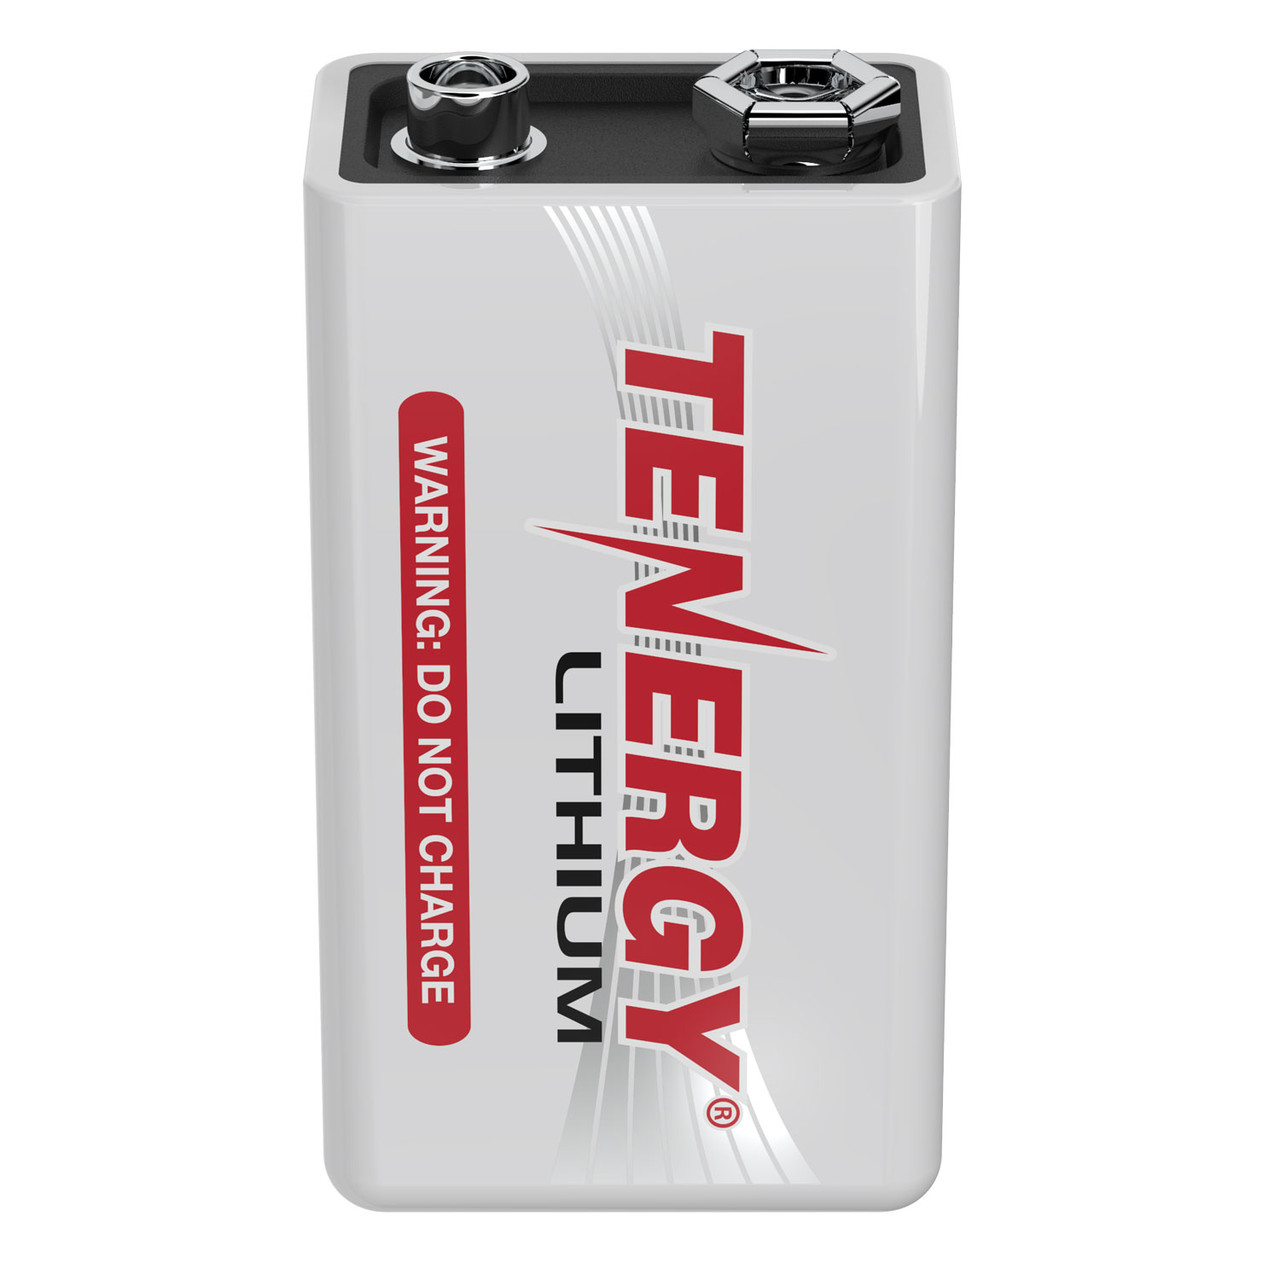 Tenergy 9V Lithium Battery, 1200mah with 10 years shelf life - [Non-Rechargeable]